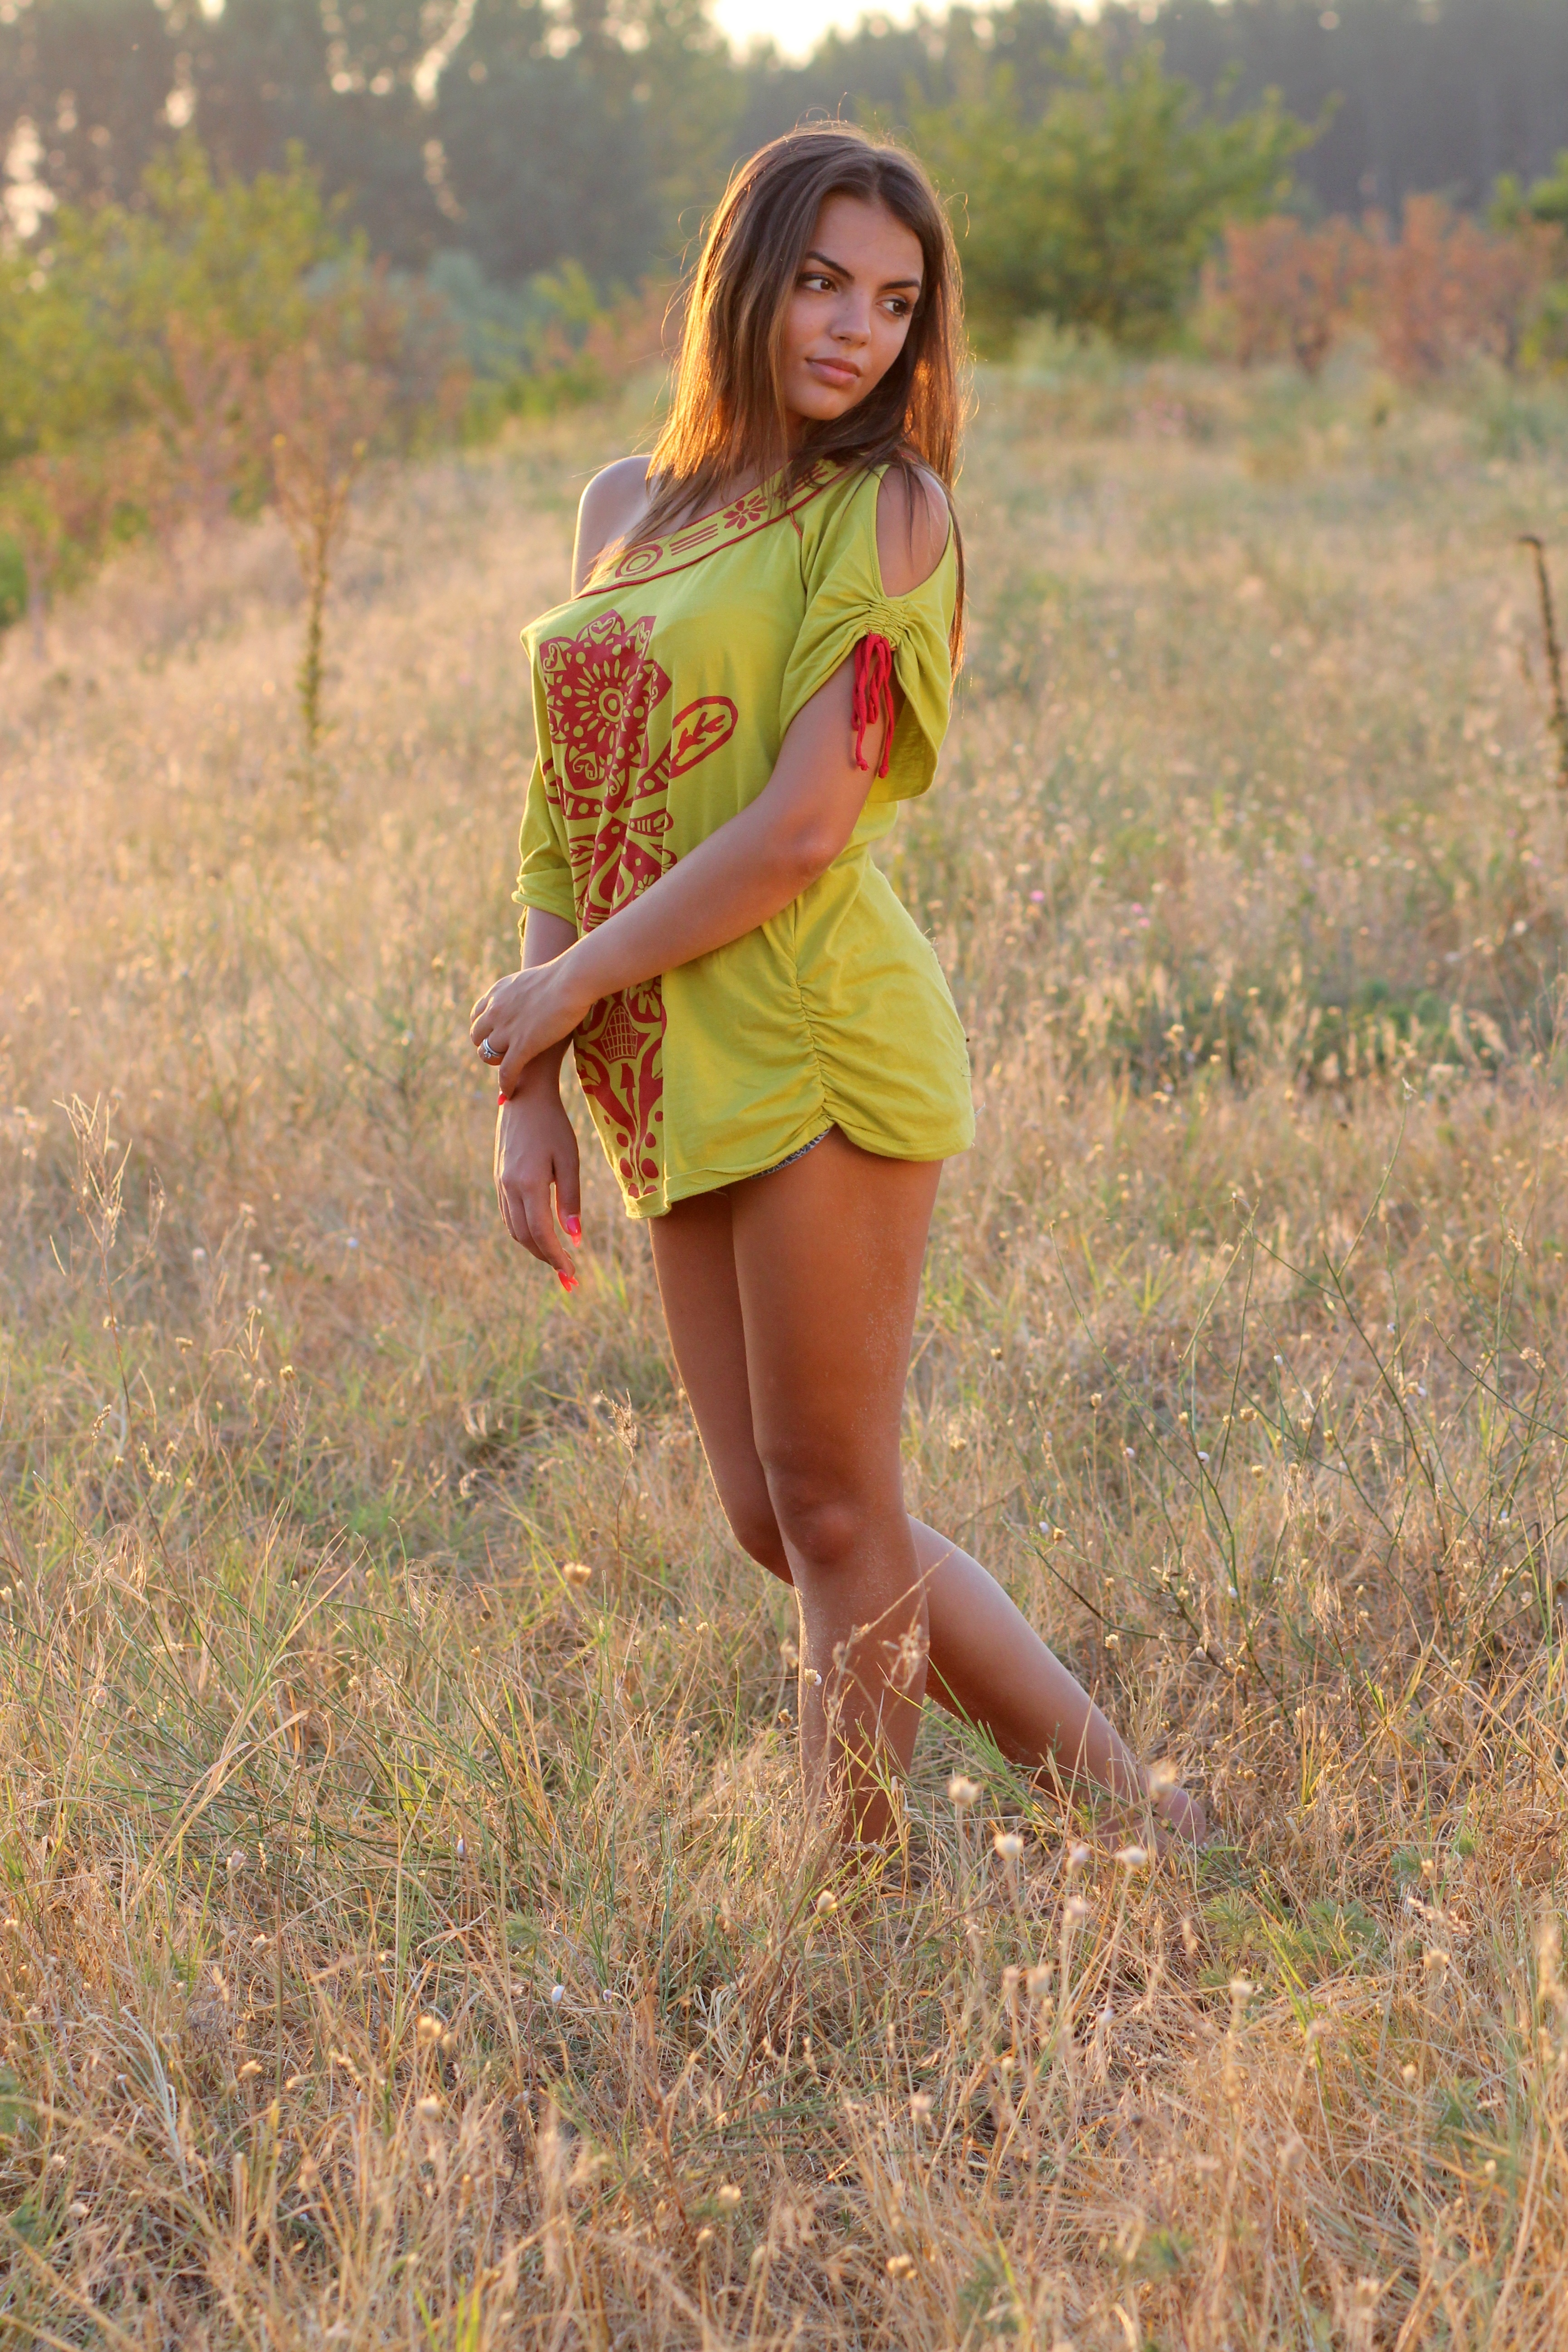 Woman in Yellow Red Floral One Shoulder Shirt Standing on